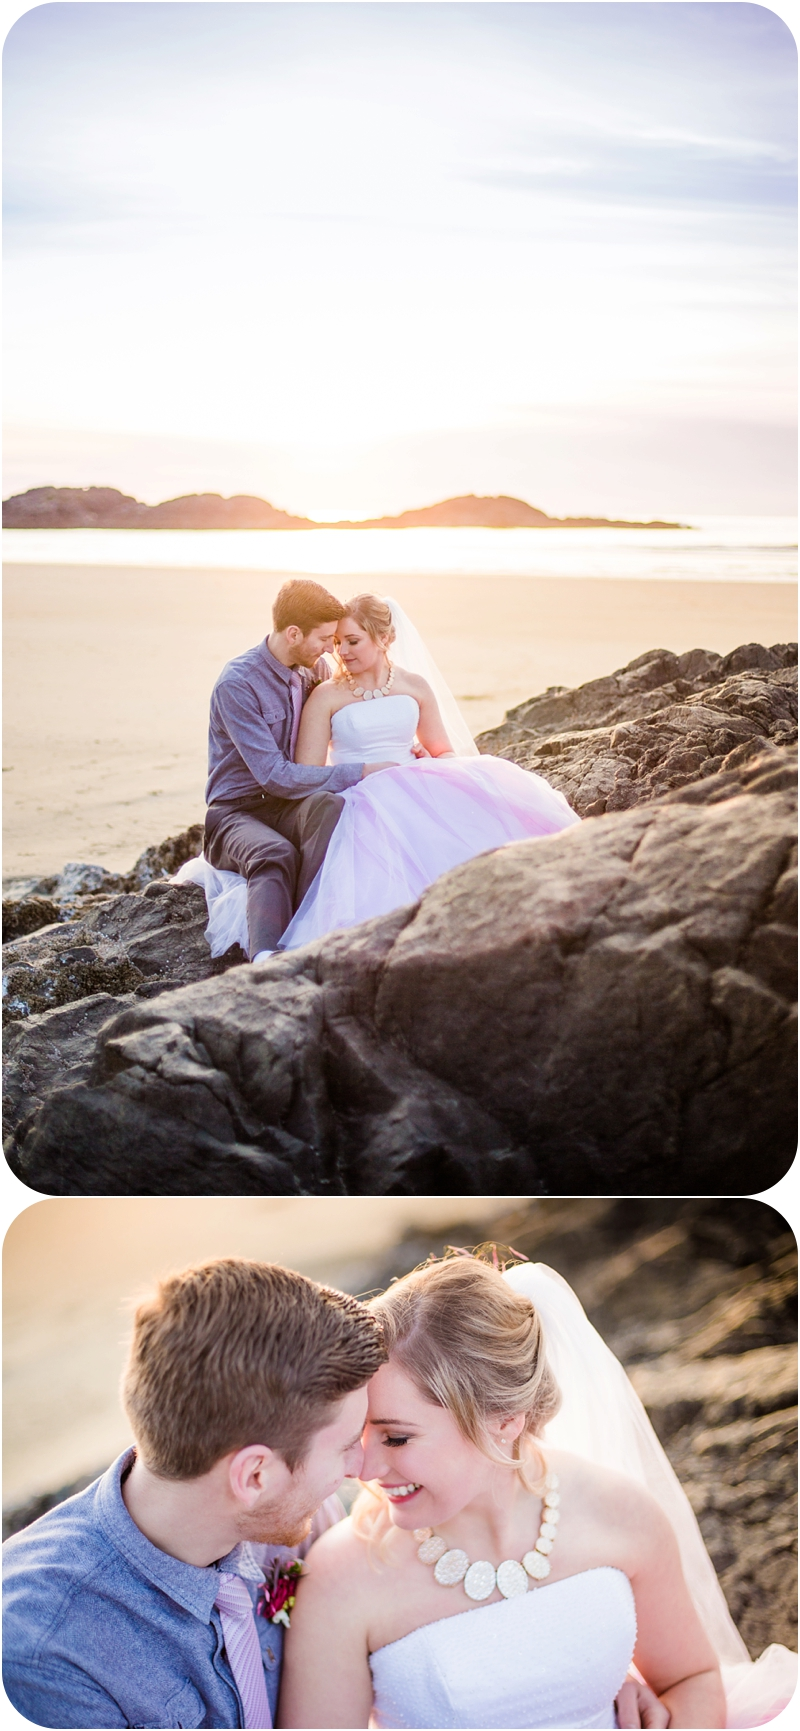 wickinnanish-beach-elopement-styled-hot-pink-tofino-weddings-43